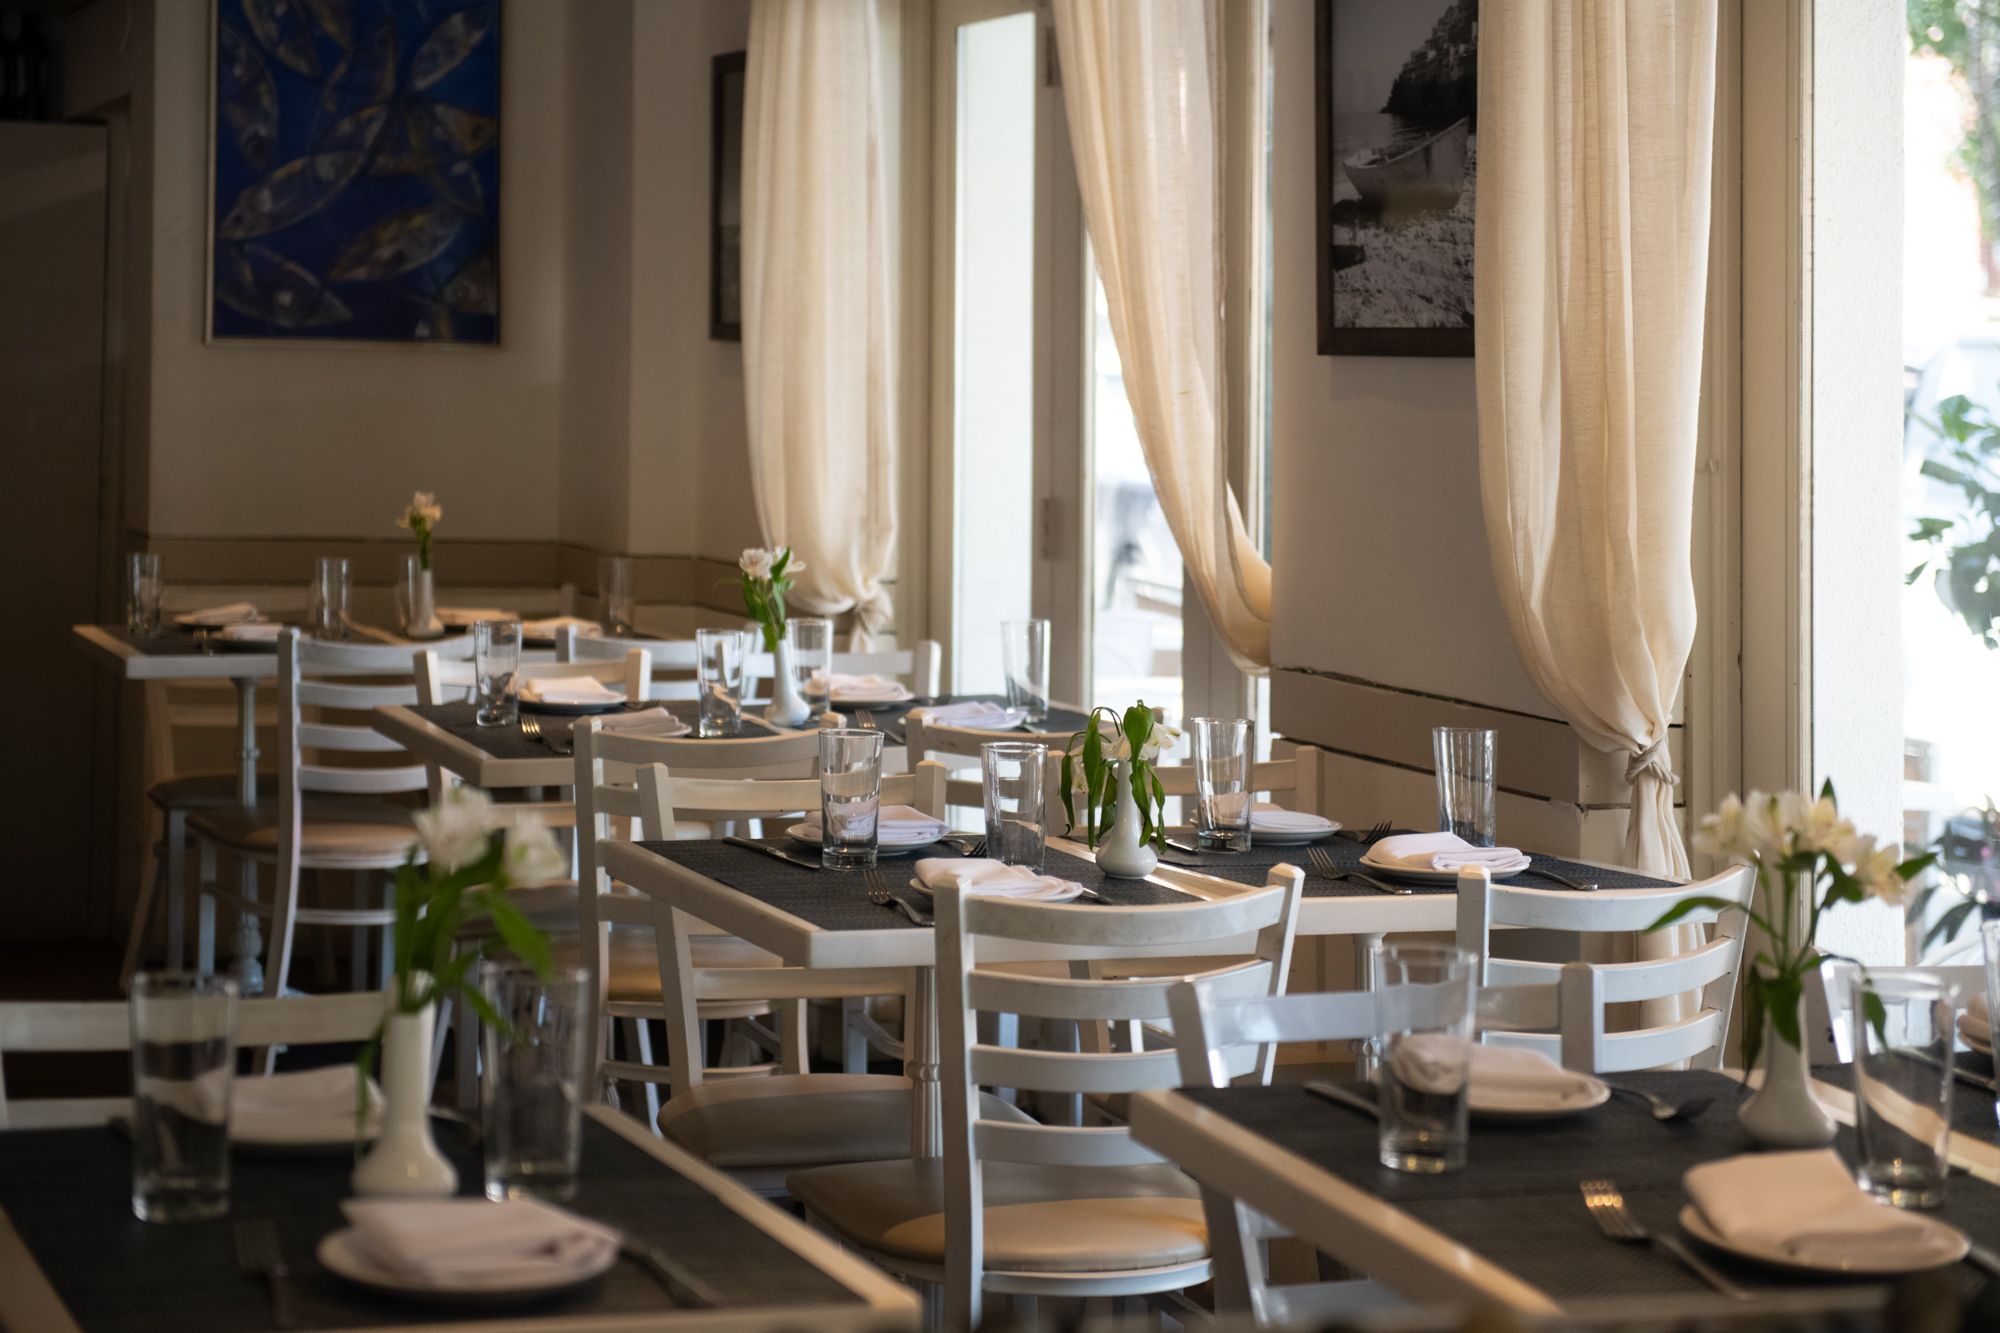 The Best Greek Restaurants In NYC - New York - The Infatuation